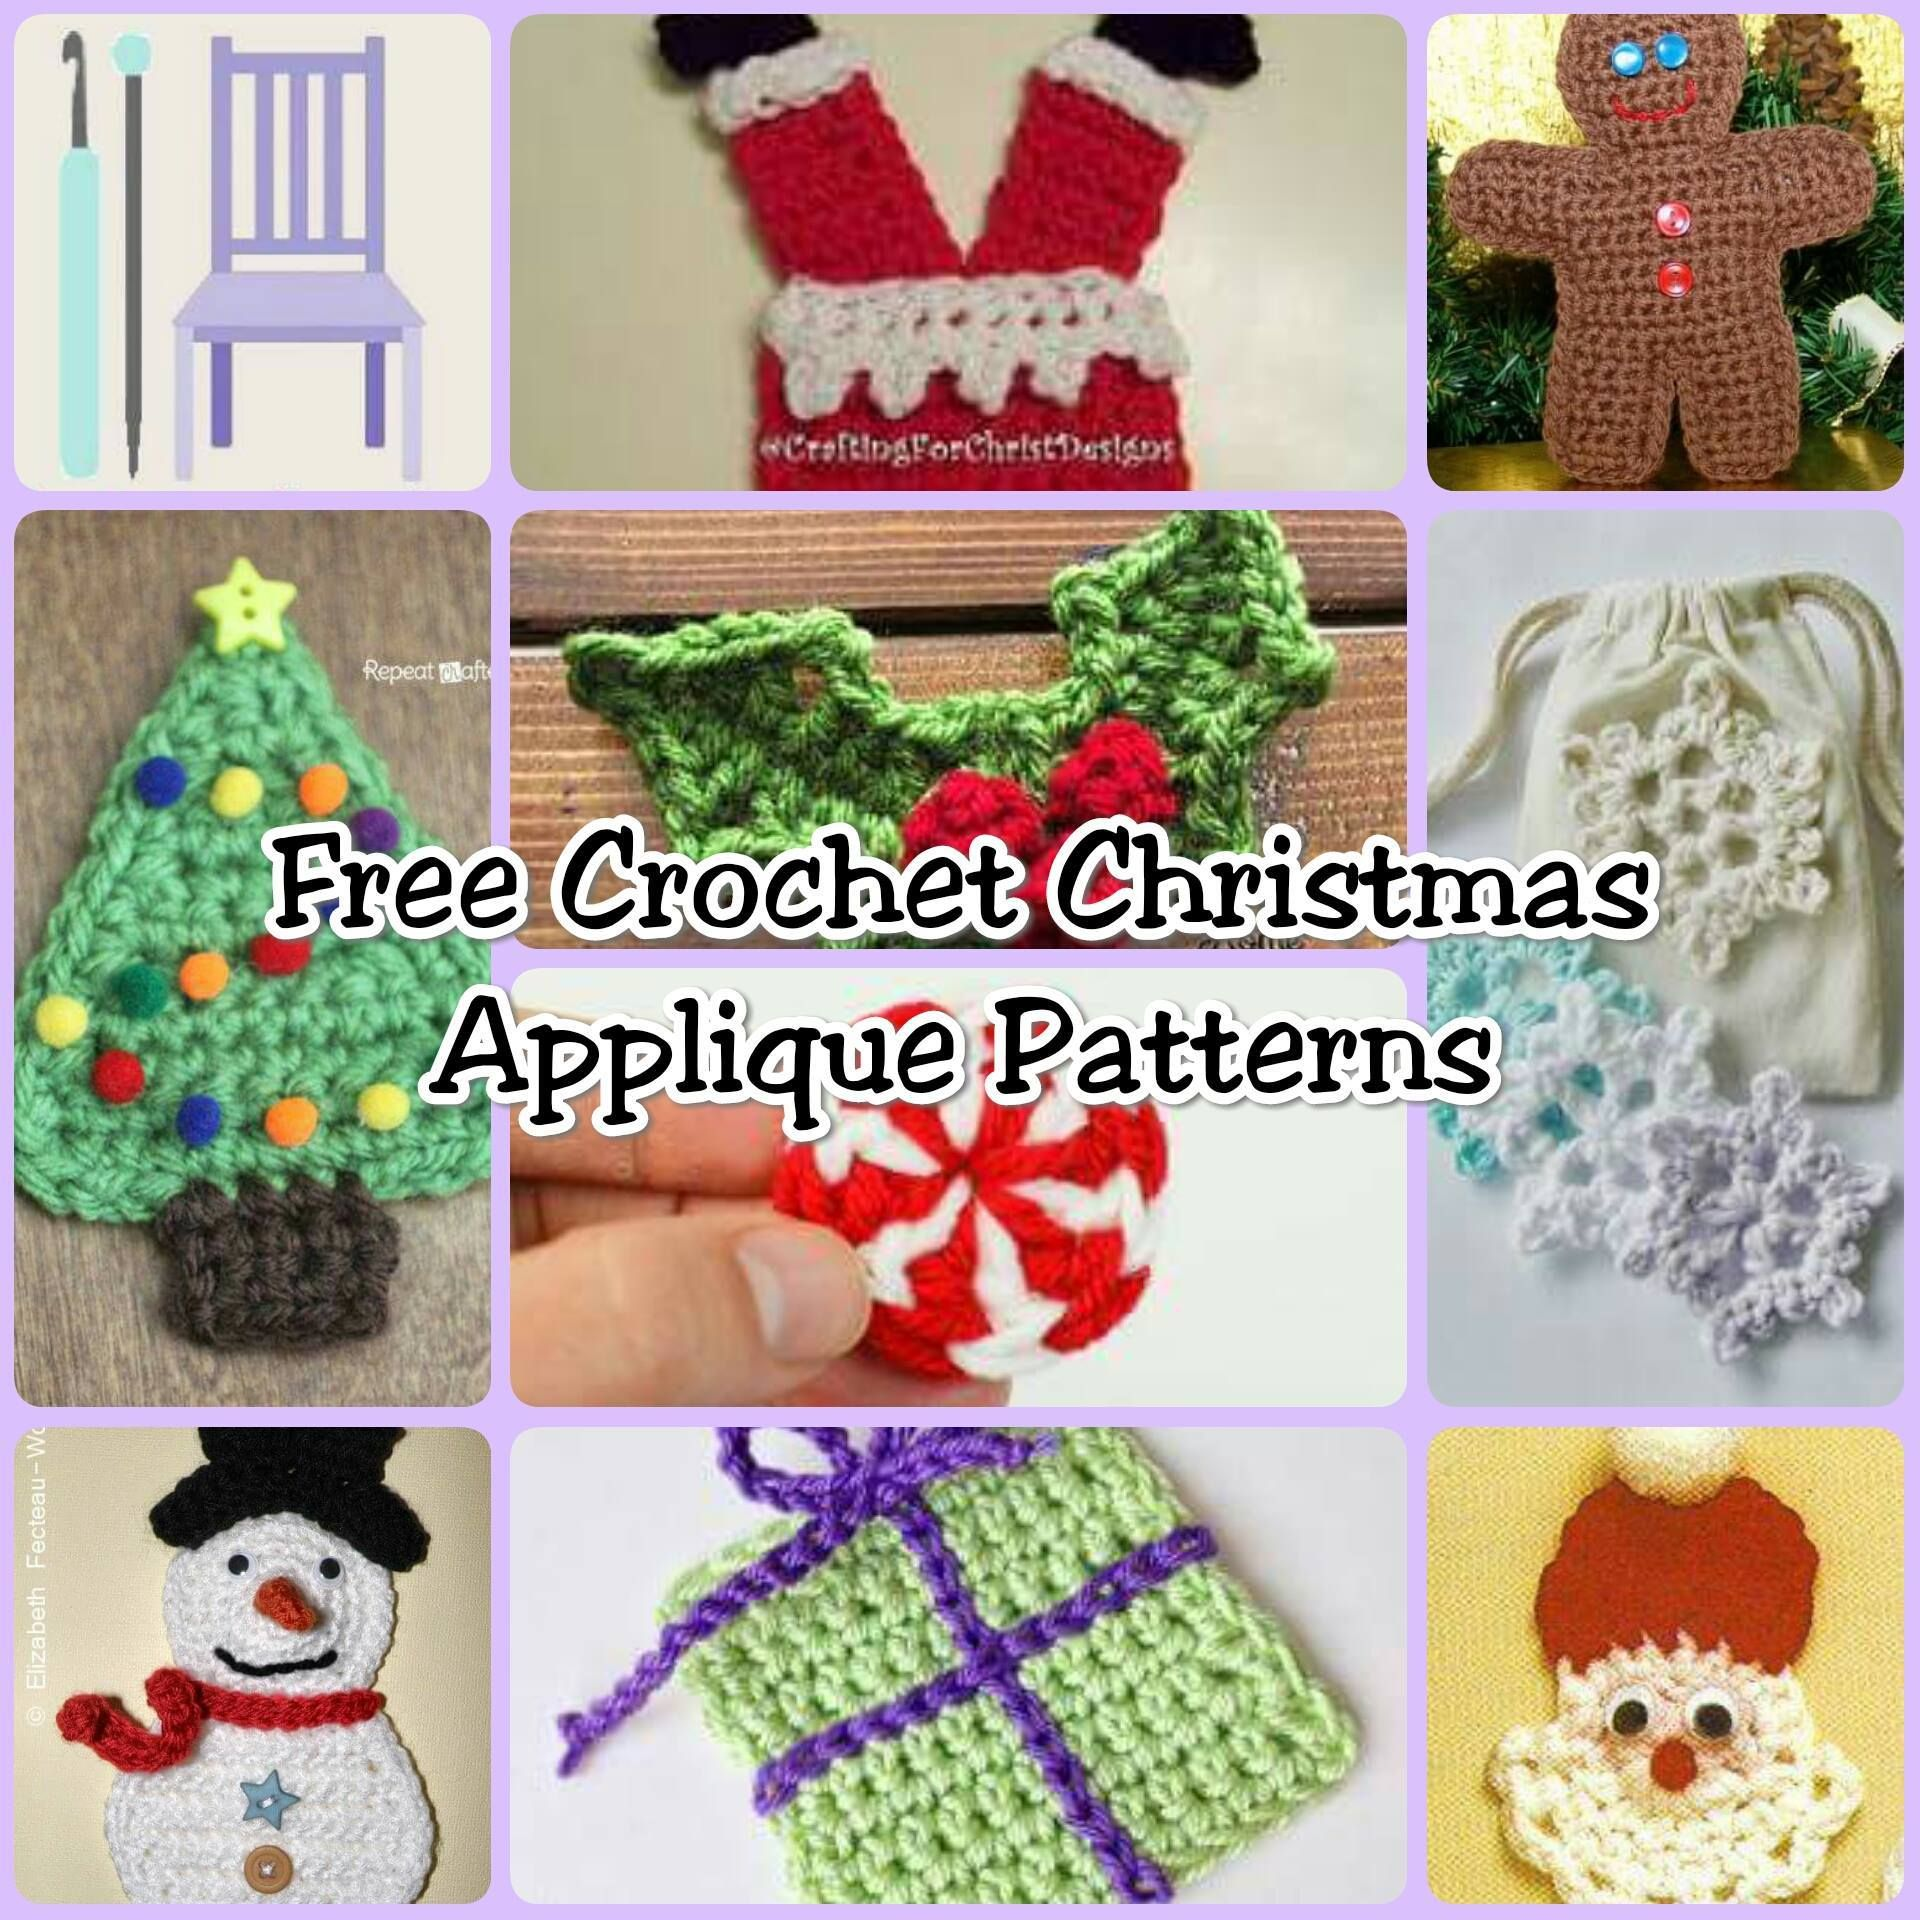 Free Crochet Christmas Applique Patterns  The Lavender Chair